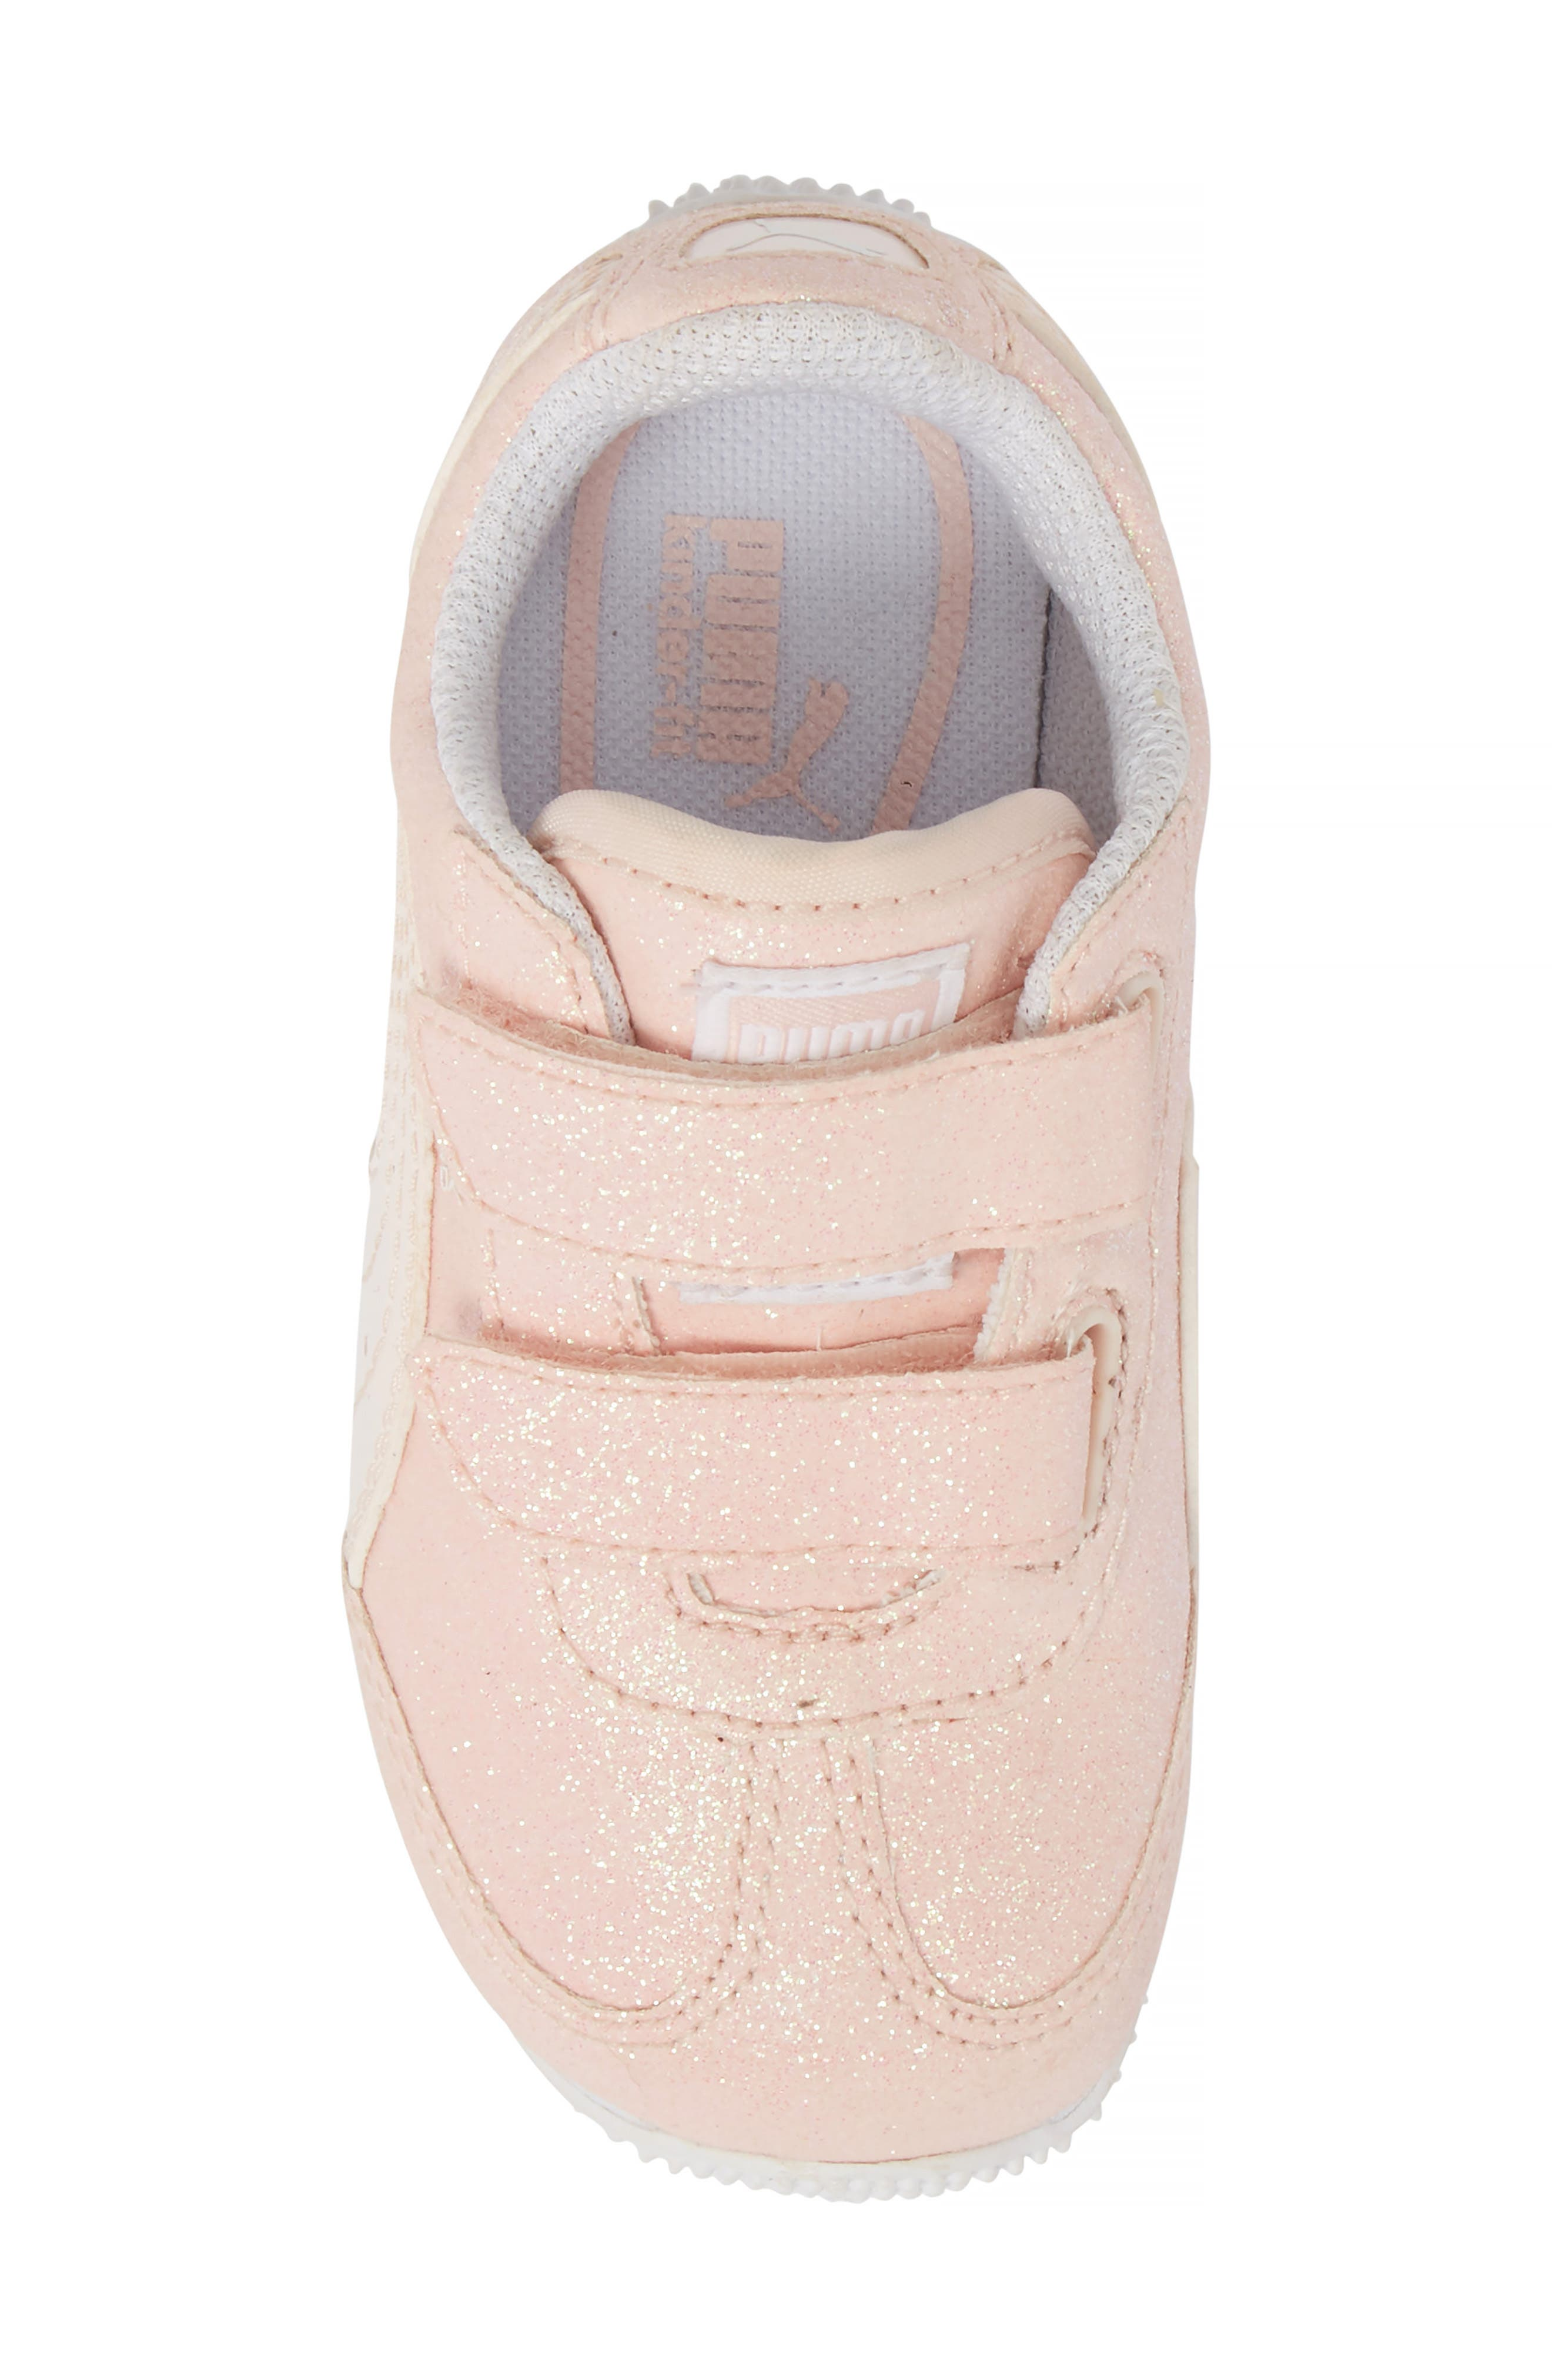 Whirlwind Glitz Sneaker,                             Alternate thumbnail 5, color,                             Pearl/ Puma White